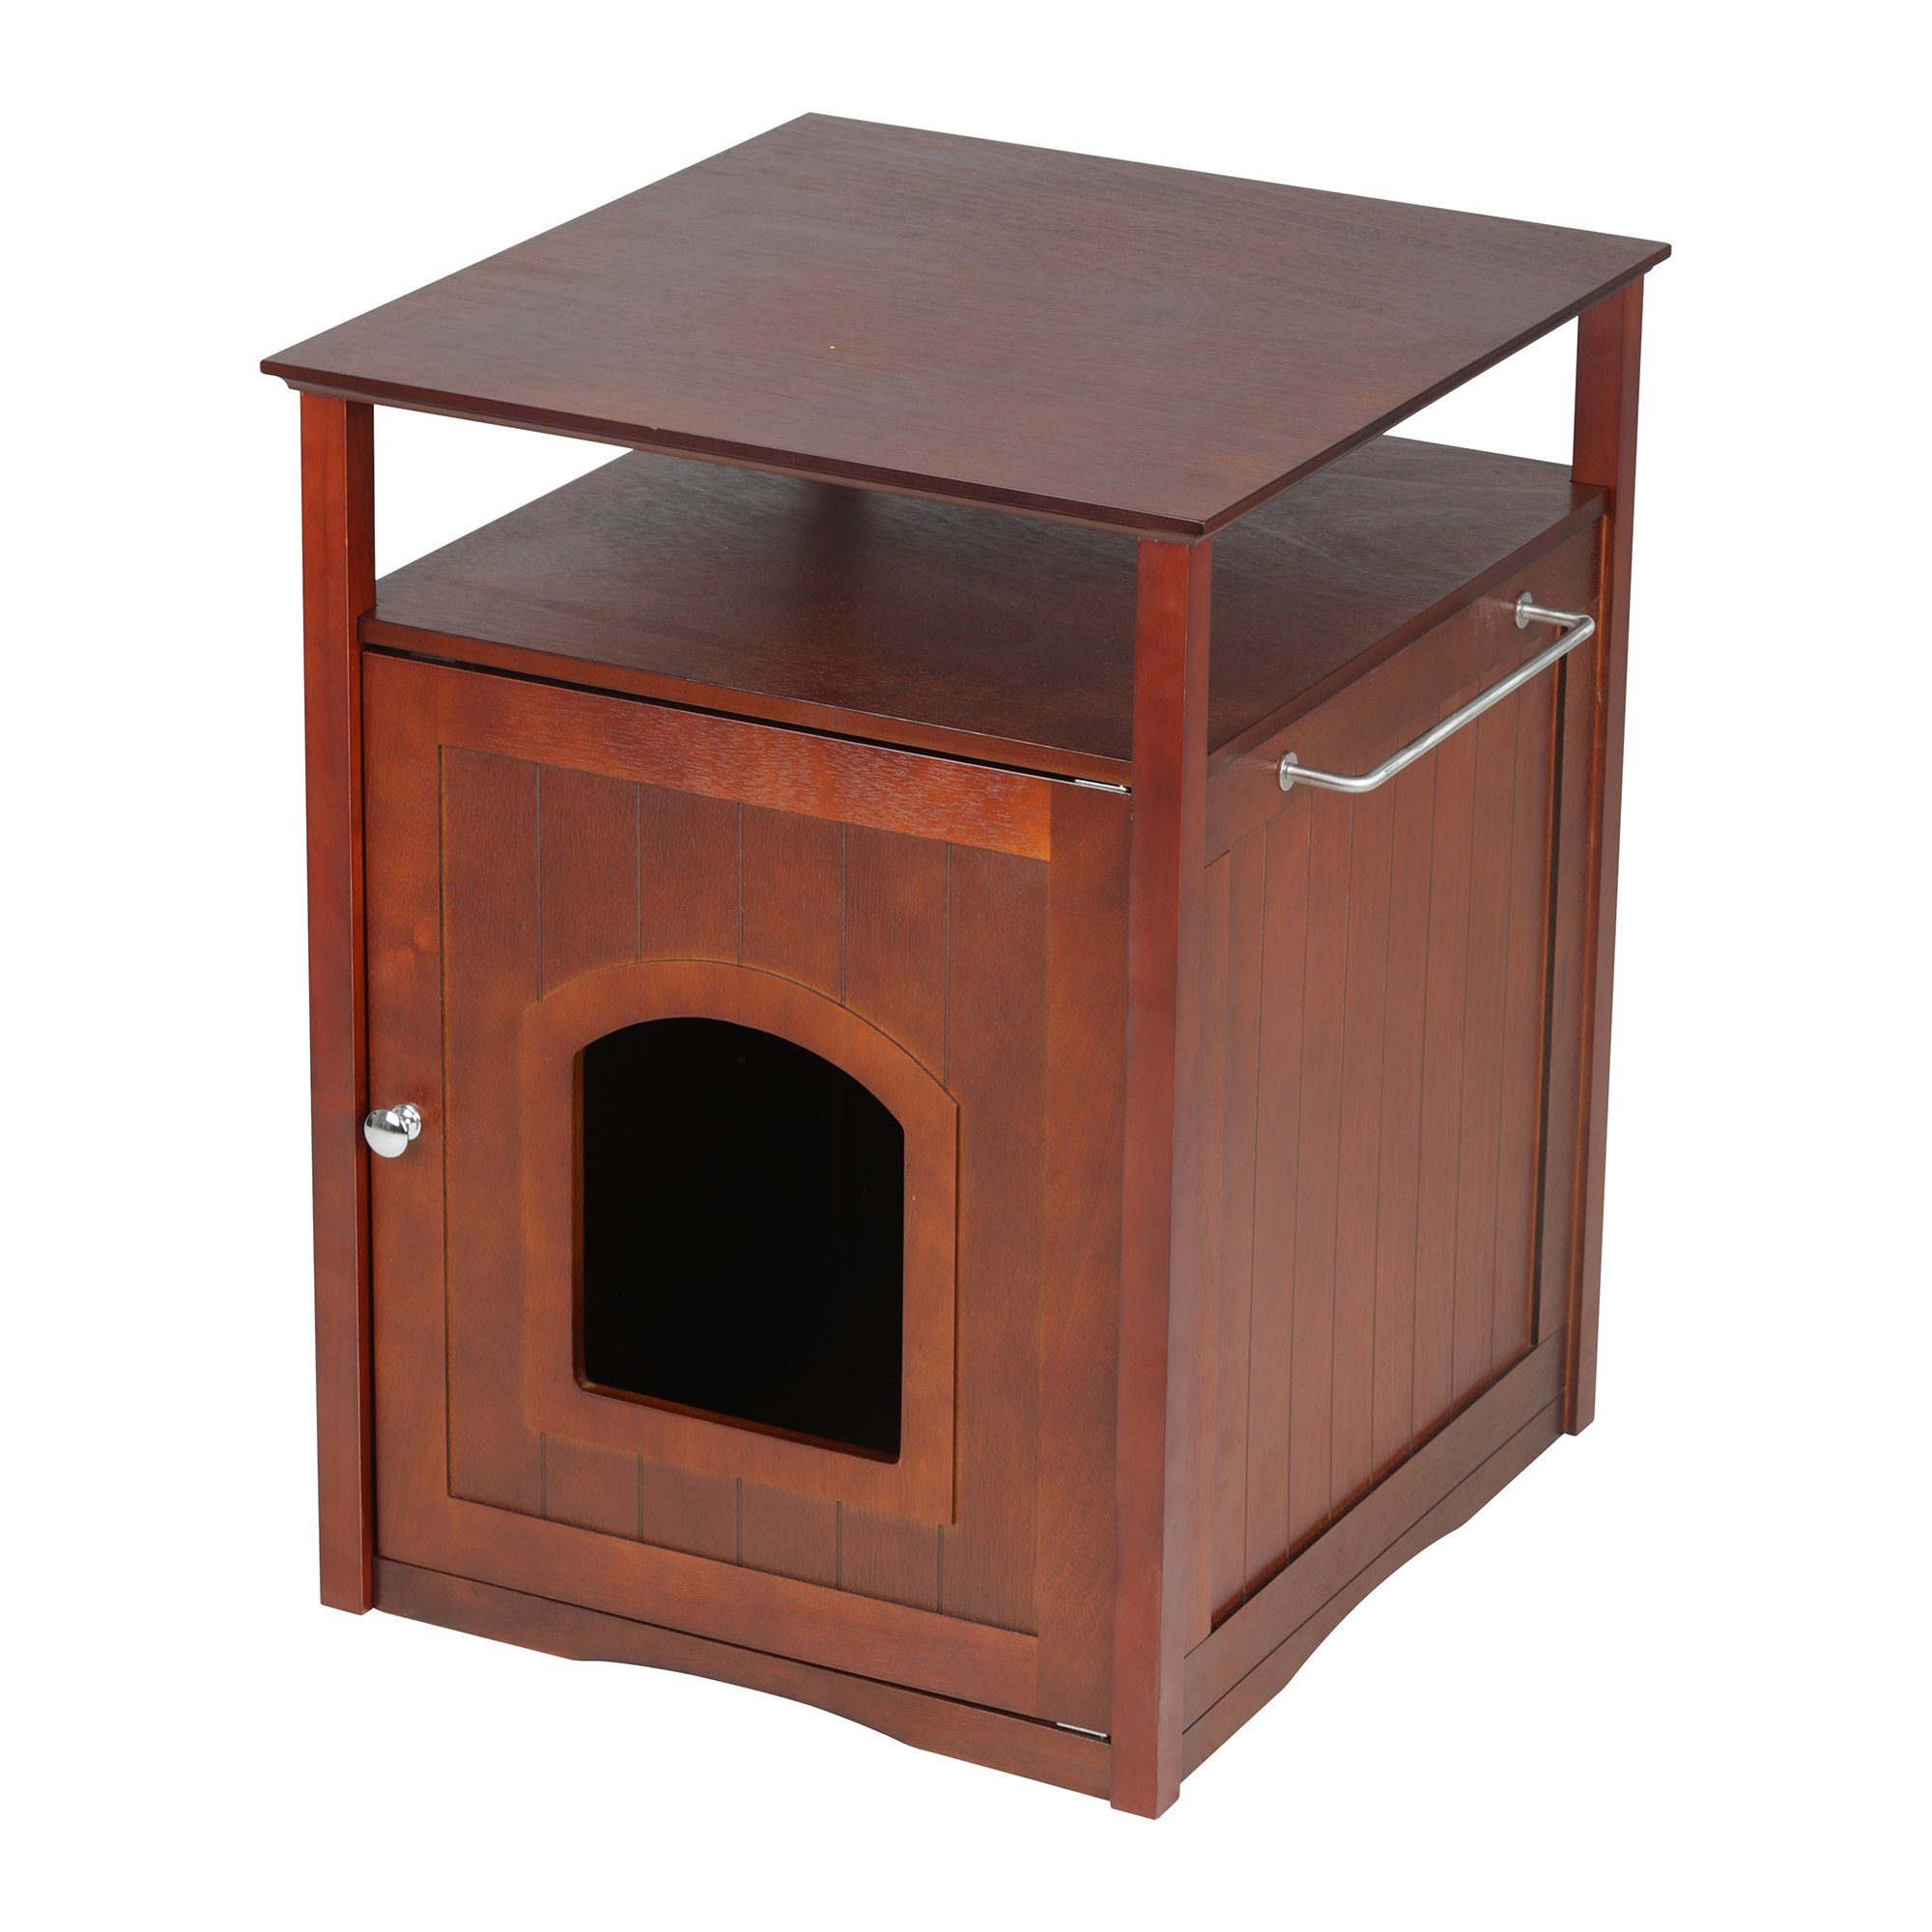 Merry Products Cat Washroom Night Stand U0026 Pet House In Walnut